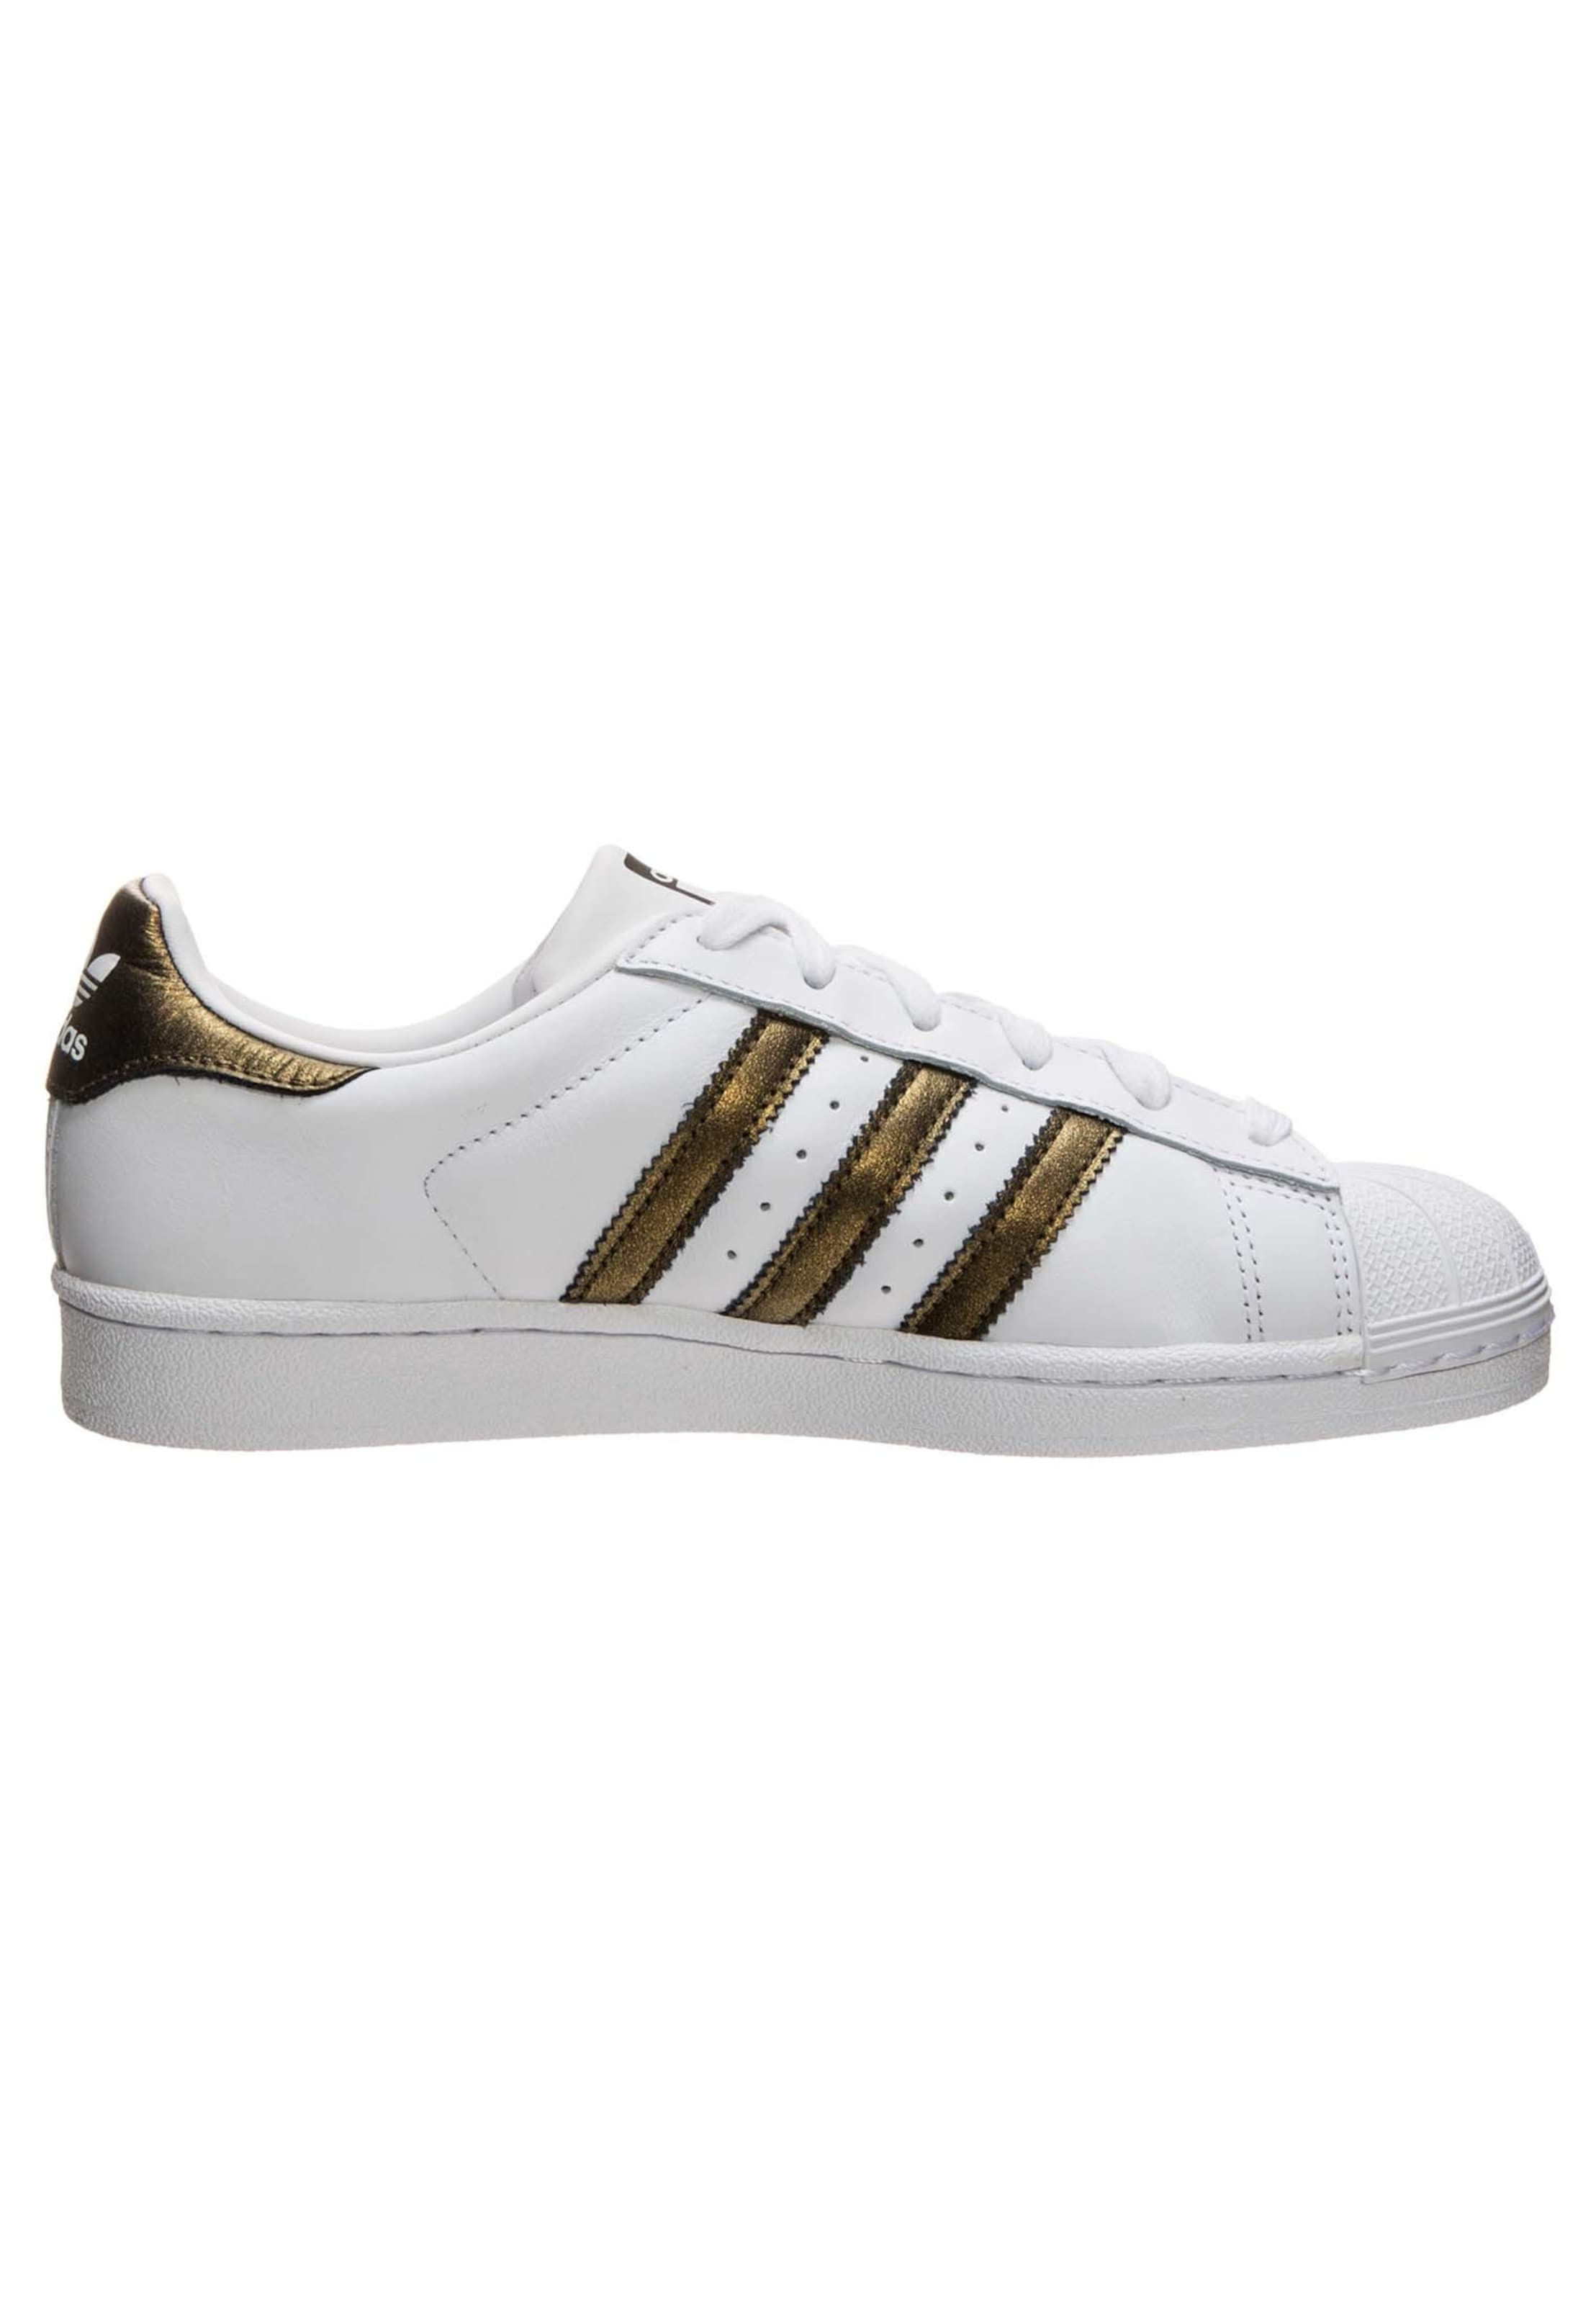 'superstar' Basses Adidas En Baskets Originals BronzeBlanc pGSUVqzM